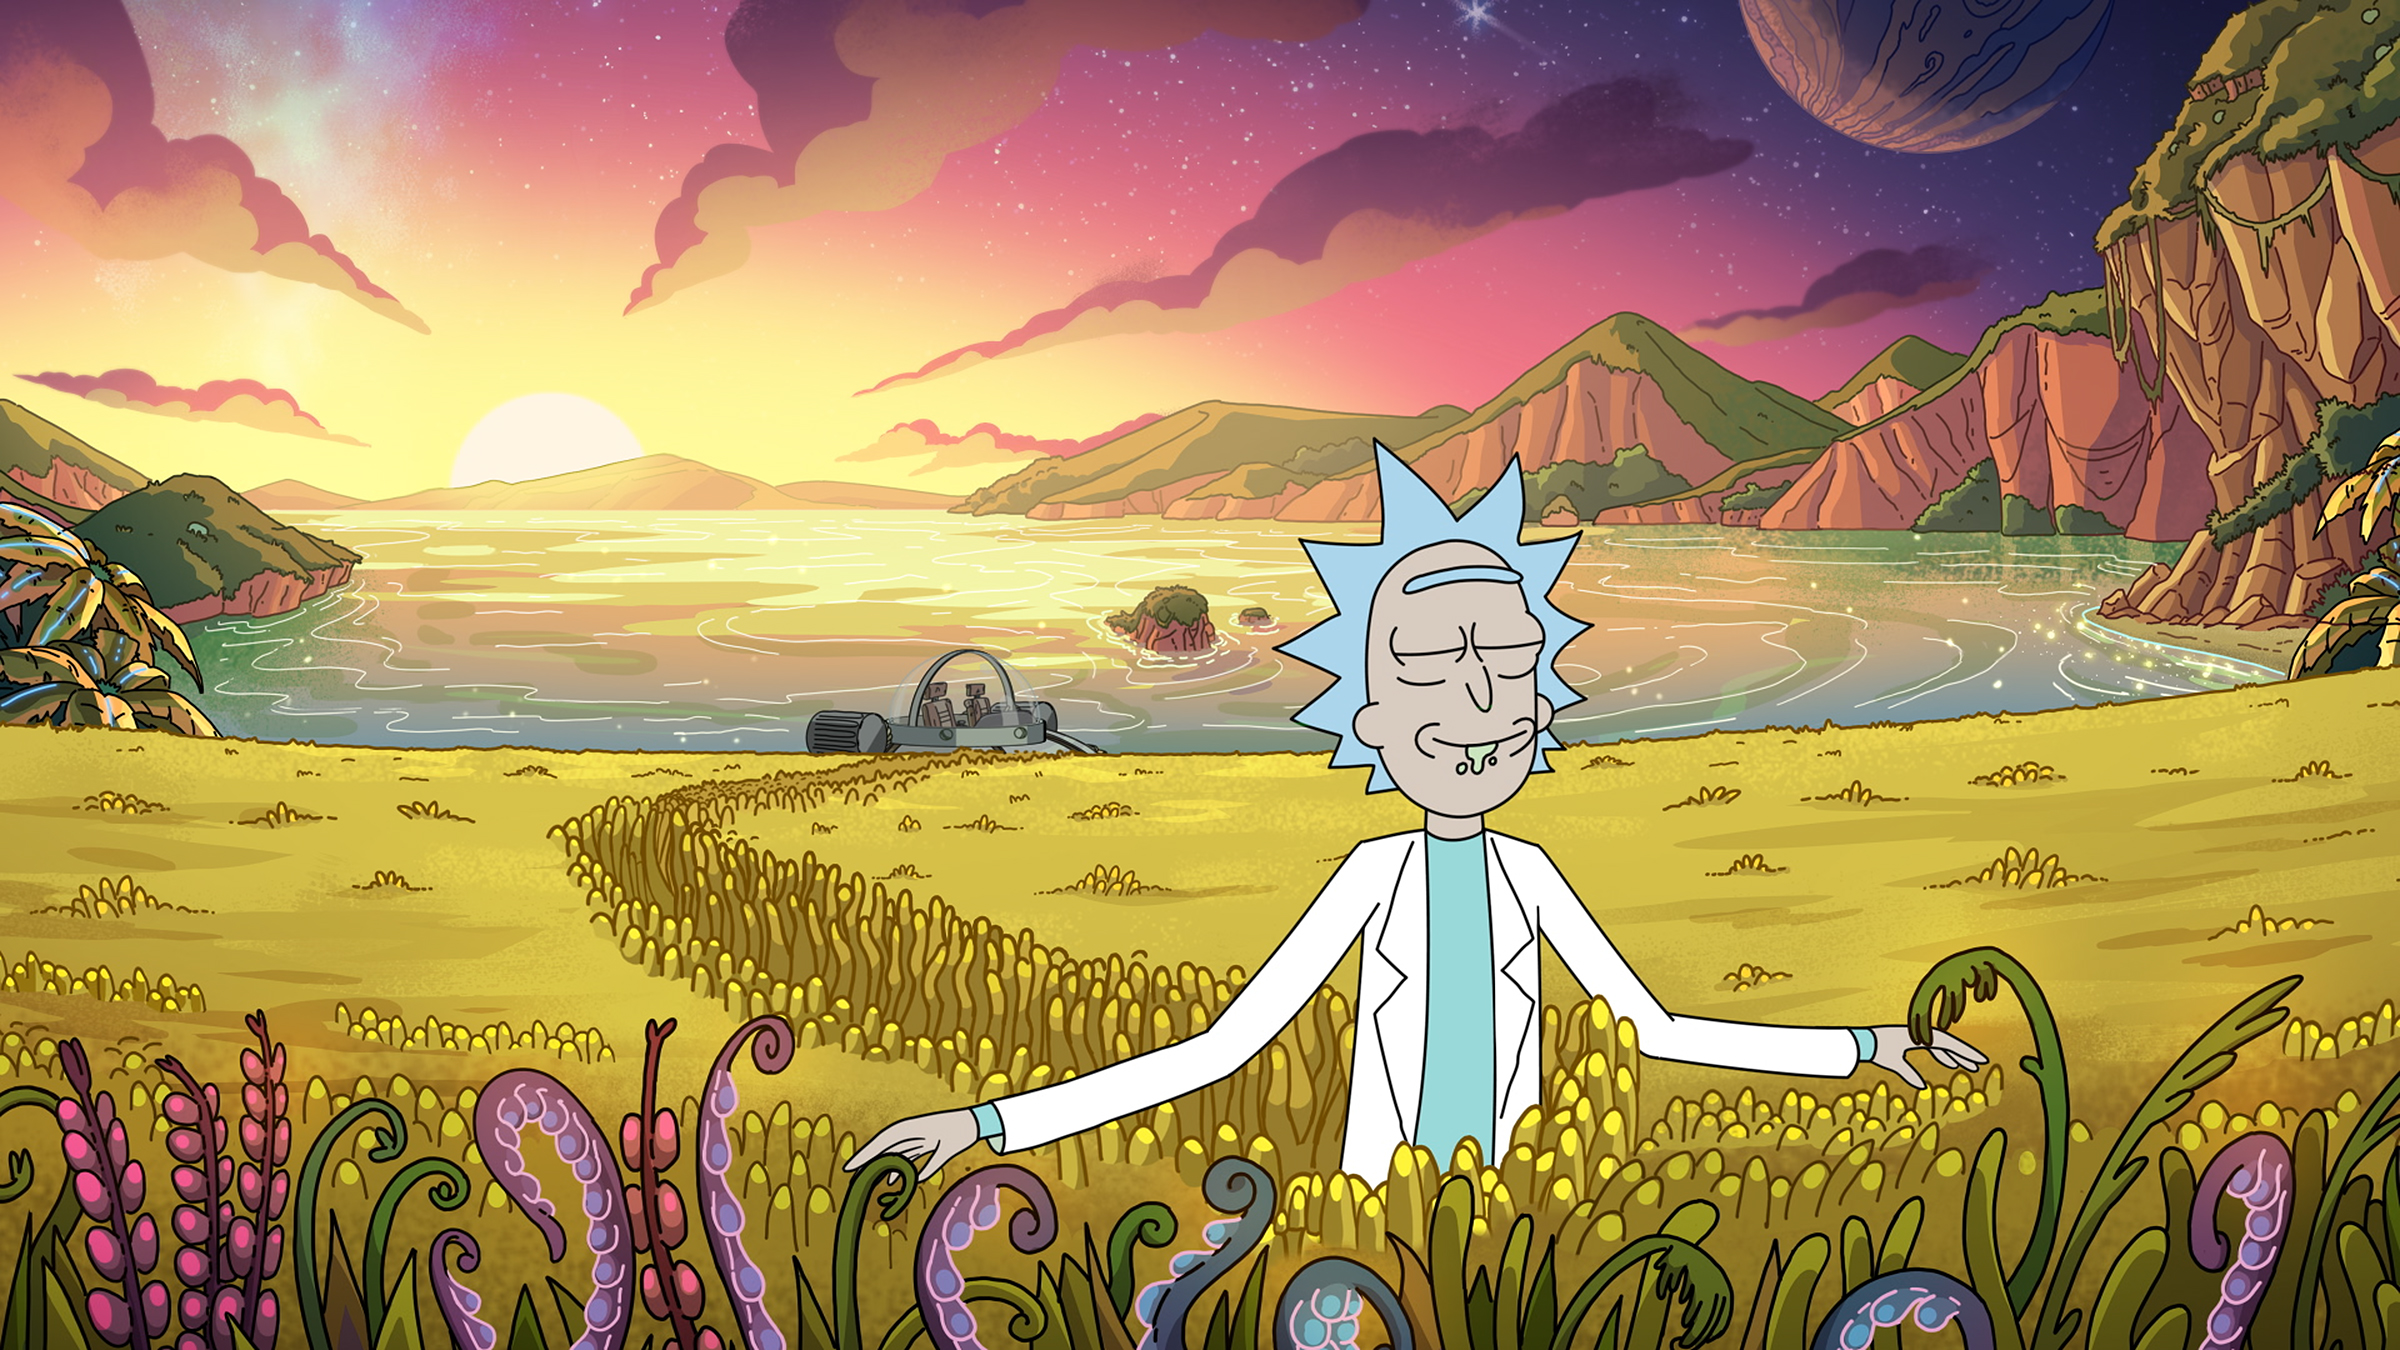 rick and morty season 4 episode 2 - photo #1